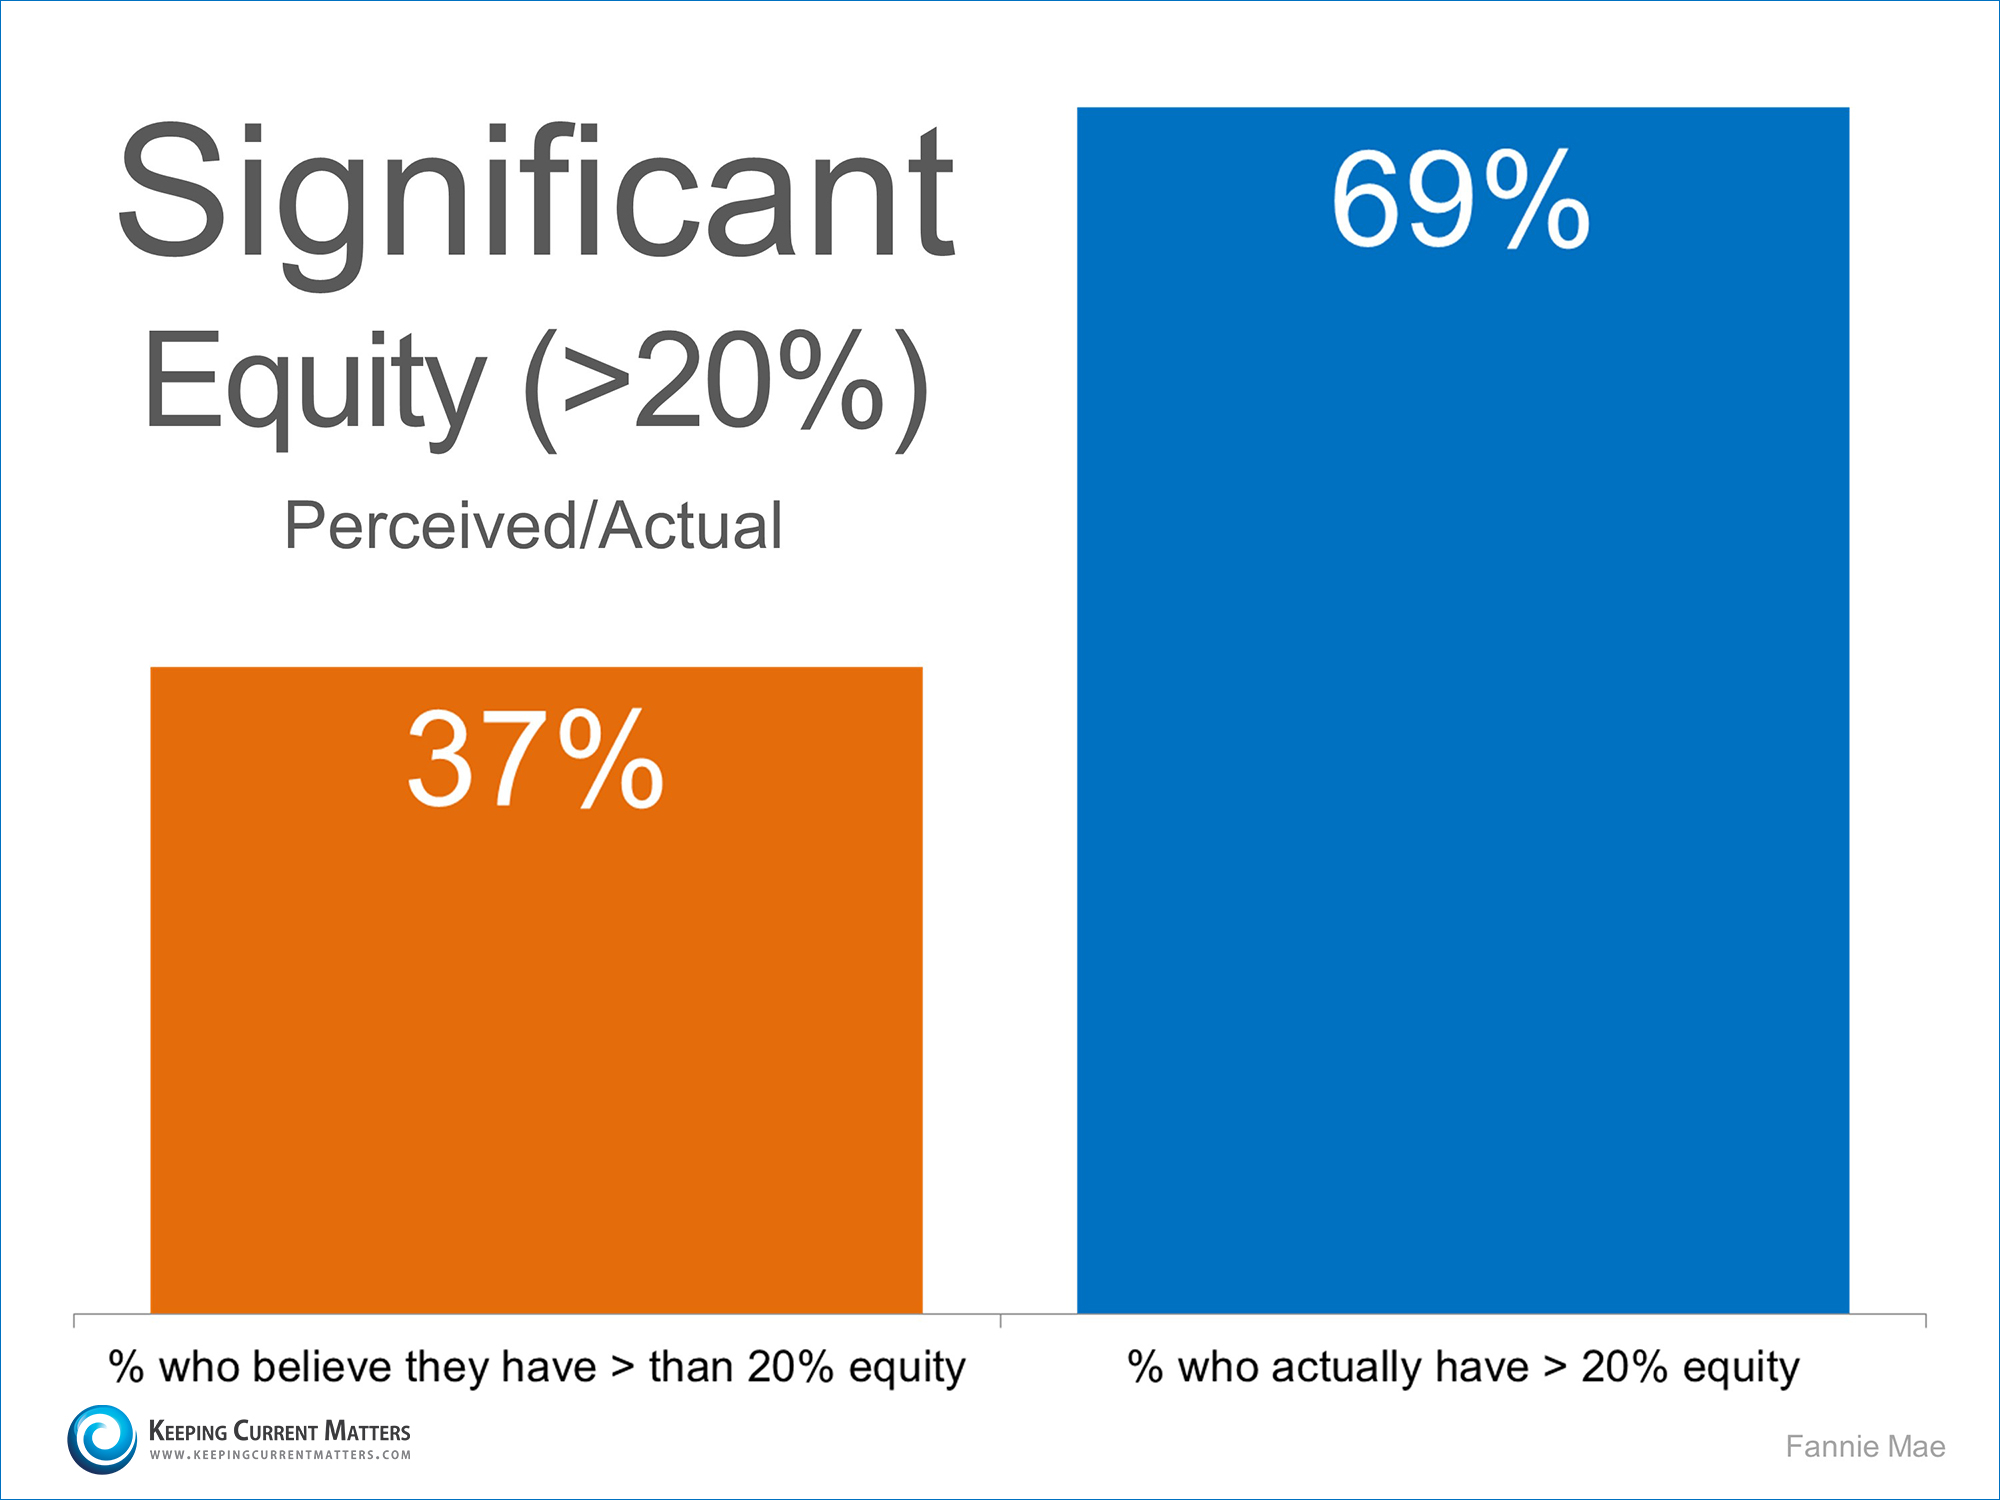 Significant Equity   Keeping Current Matters